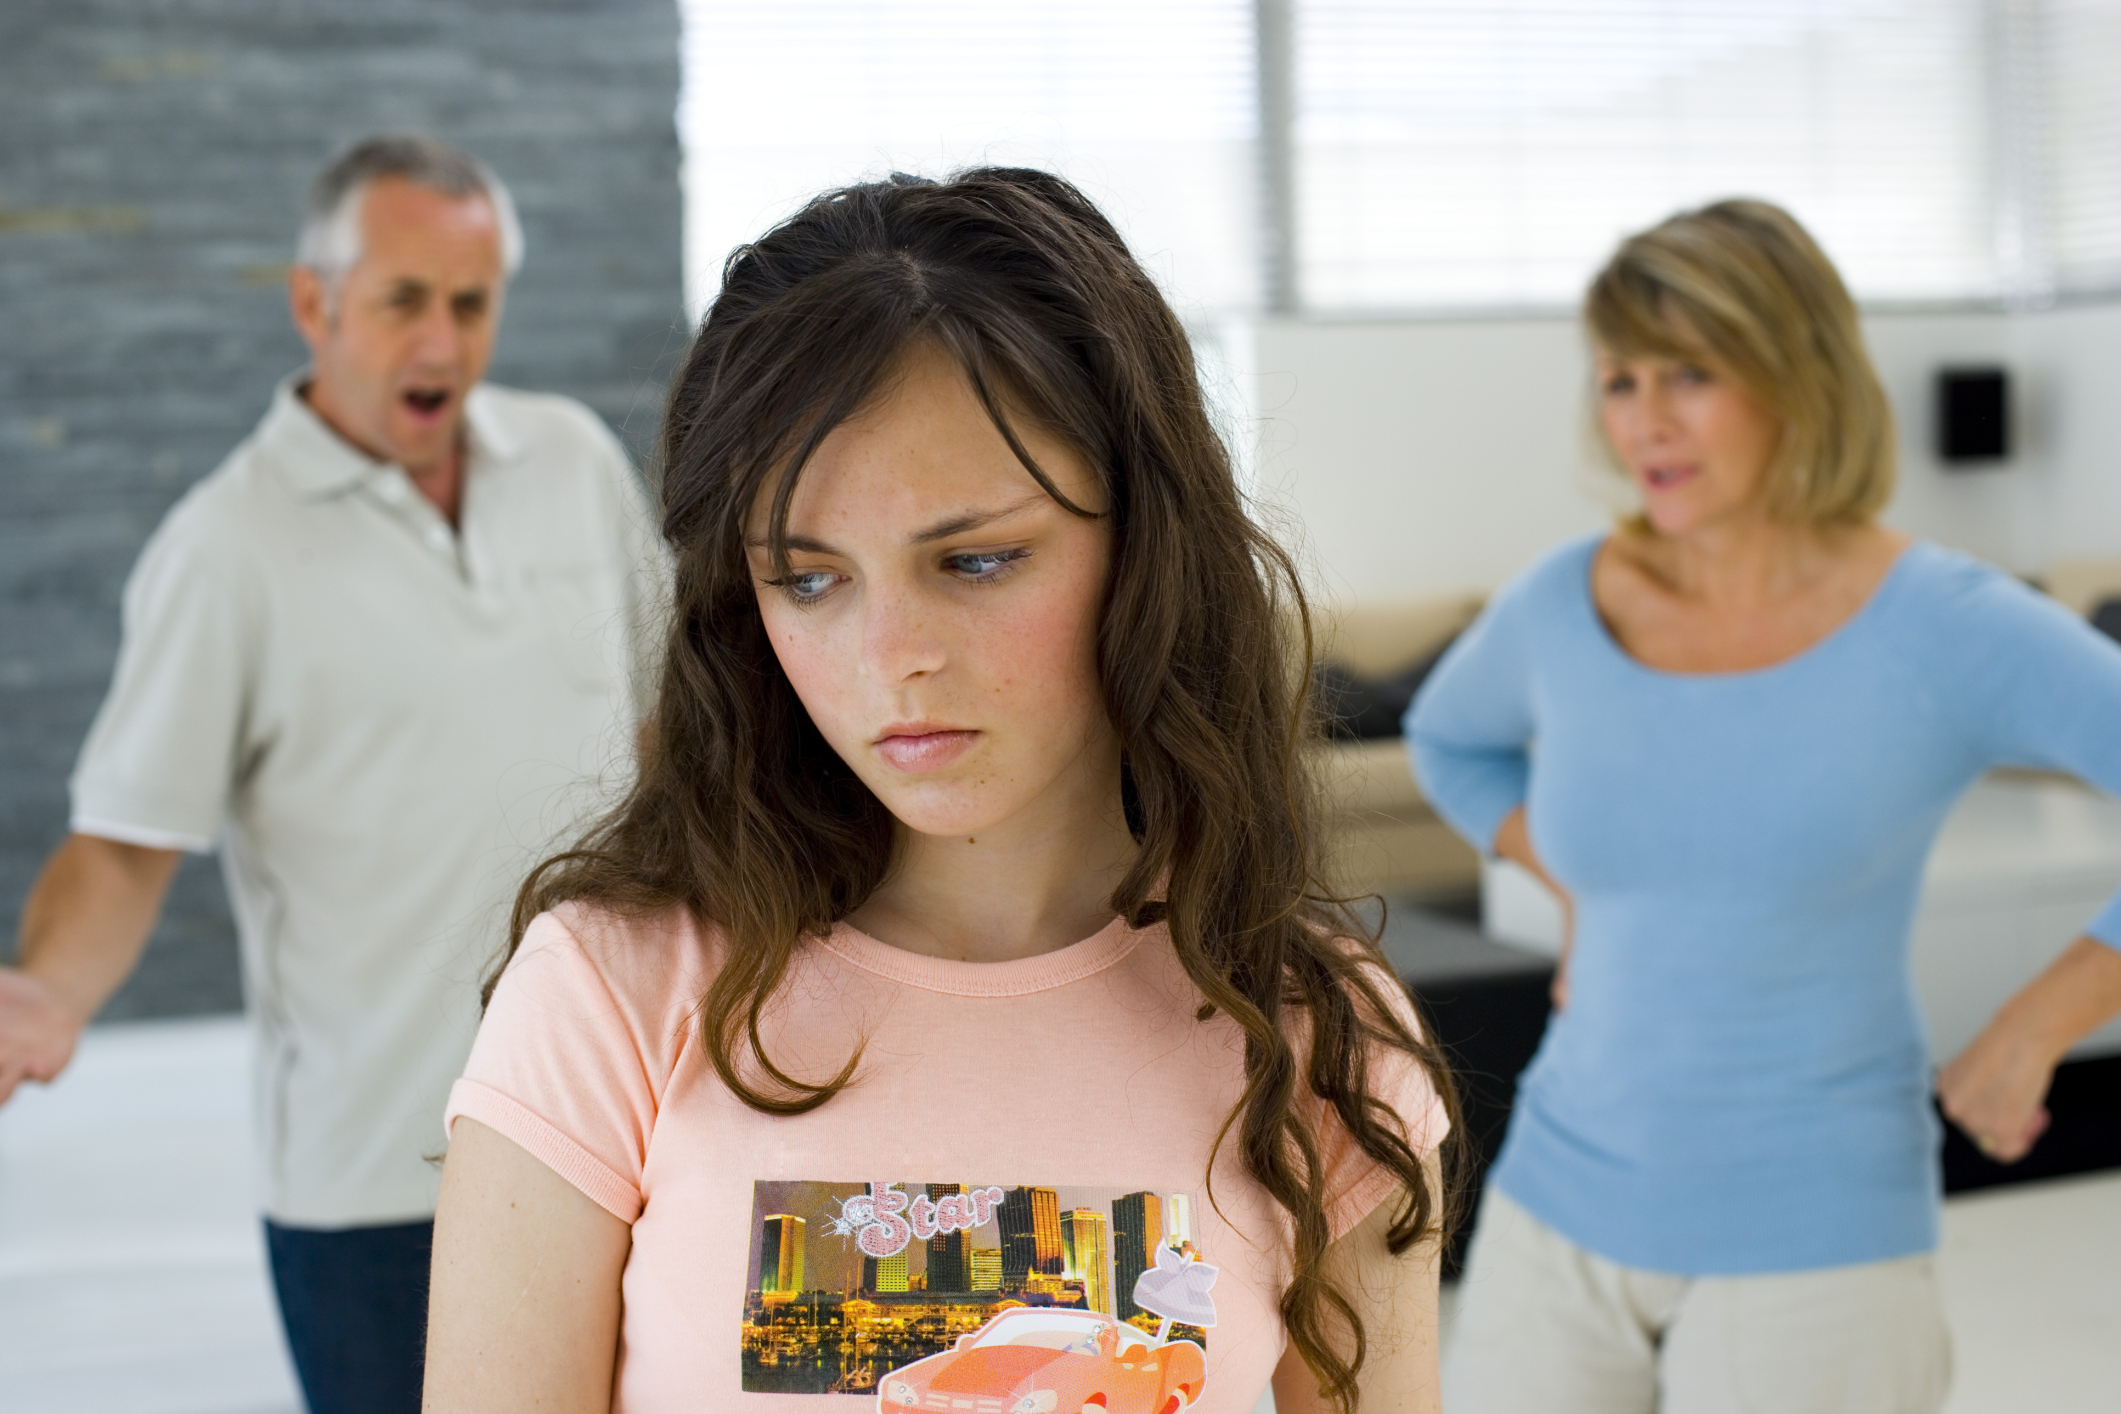 independence teenagers Other parents are dealing with the ongoing presence of rituals and obsessions that might interfere with the teen's eventual independence psychotherapy might work in this kind of situation, but there are also medications designed to control ritual behavior.